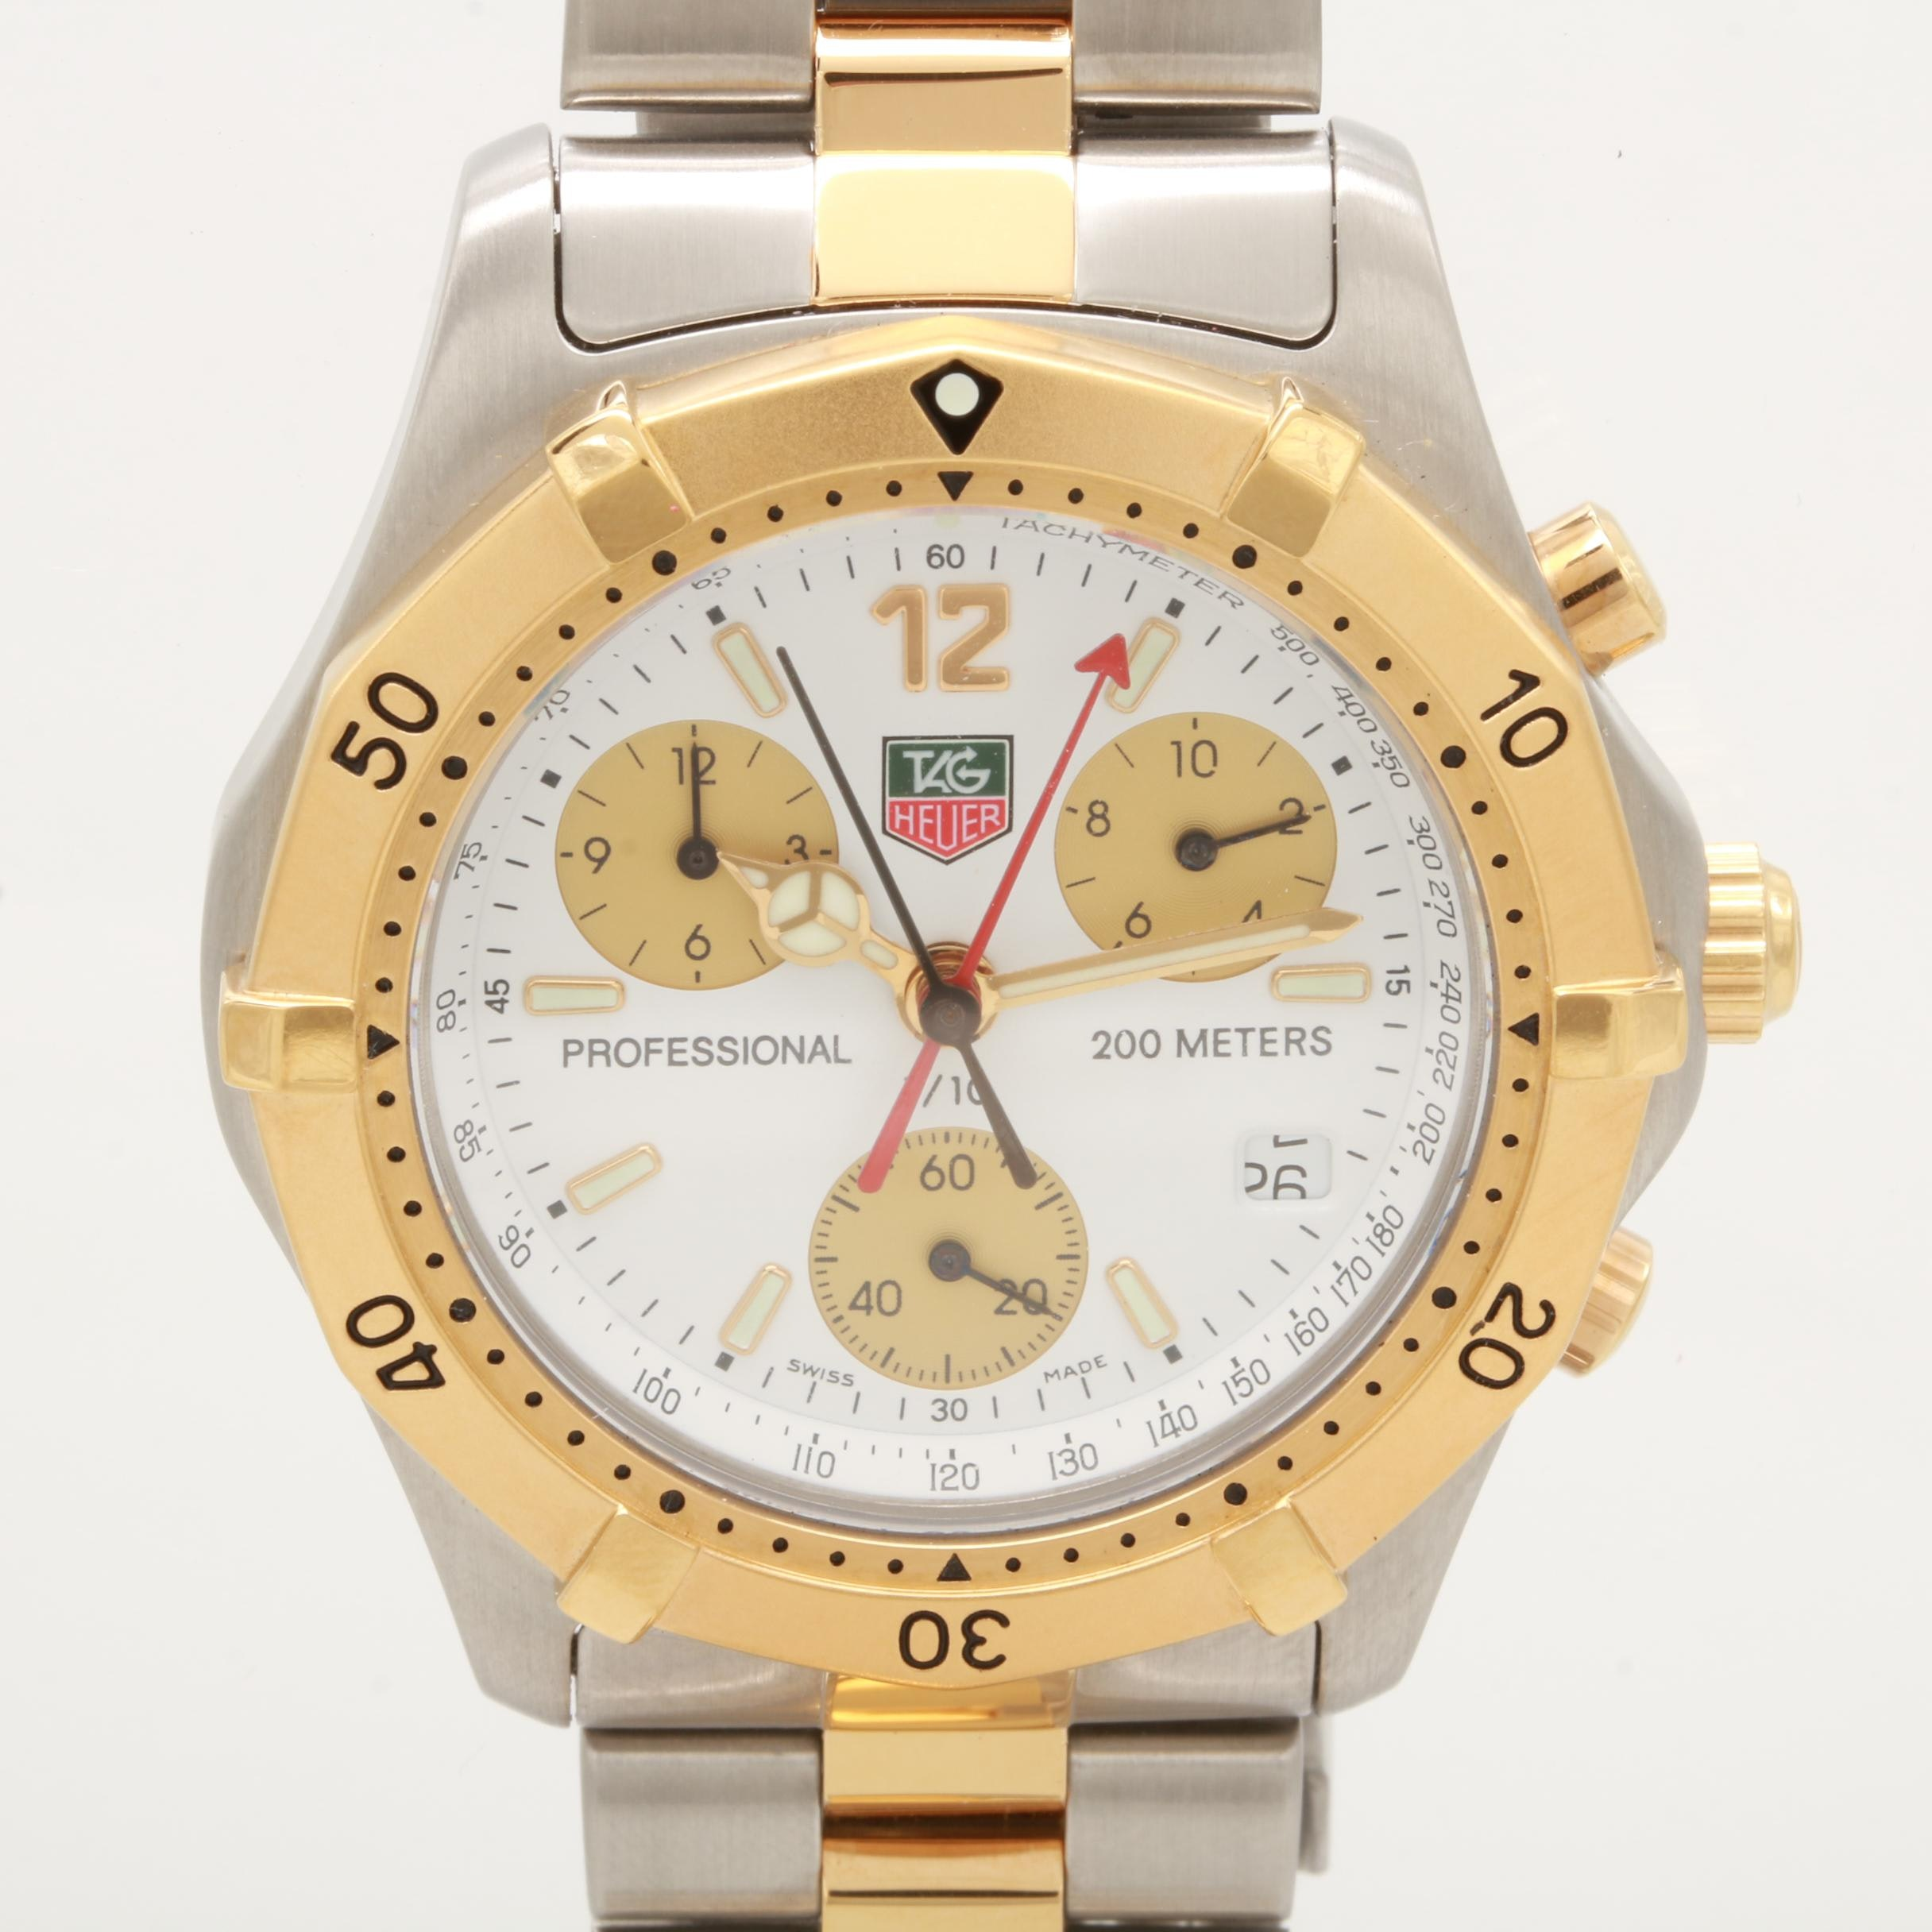 TAG Heuer 2000 Series Two-Tone Chronograph Wristwatch